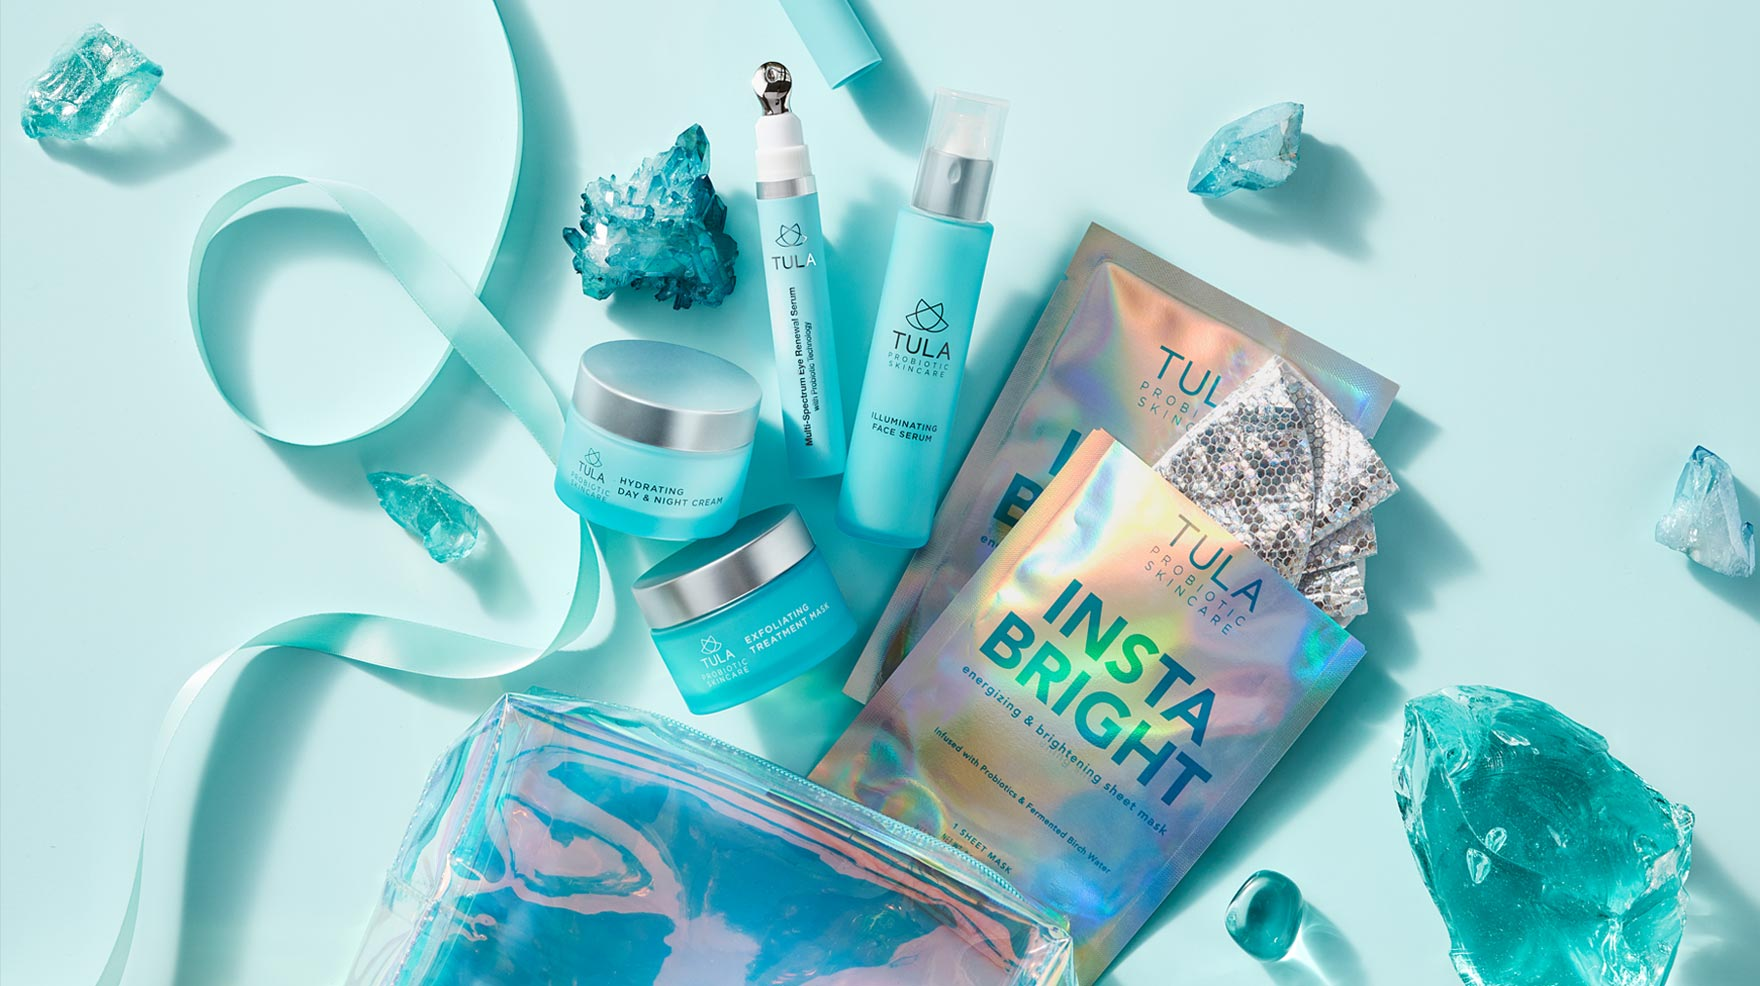 tula skincare holiday kit - ultimate kit - how to use